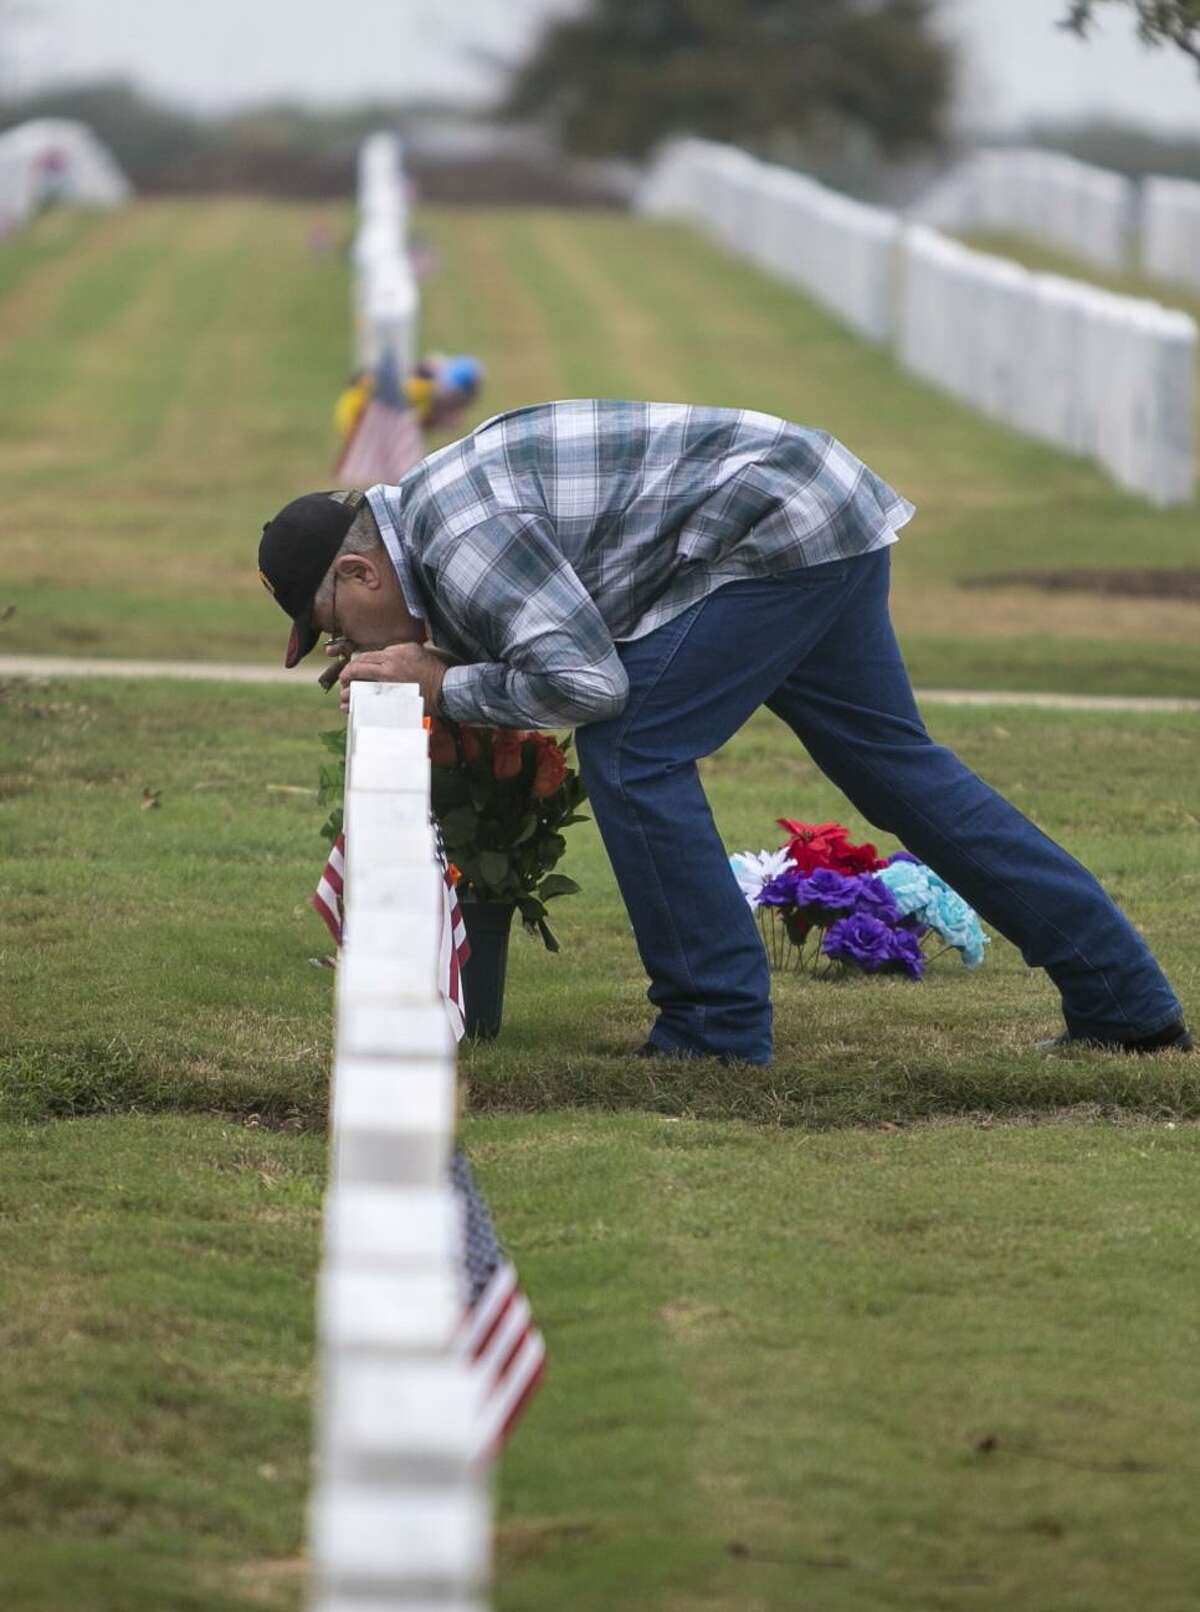 """Sam Allen bends over to kiss the headstone of his wife, Mary Allen, who died in March of this year. He visits her grave at Fort Sam Houston National Cemetery several times a week, and sometimes brings his guitar to sing to her. """"She was in the Army and I was a Marine - an unlikely couple but it worked,"""" Allen said on Nov. 11."""